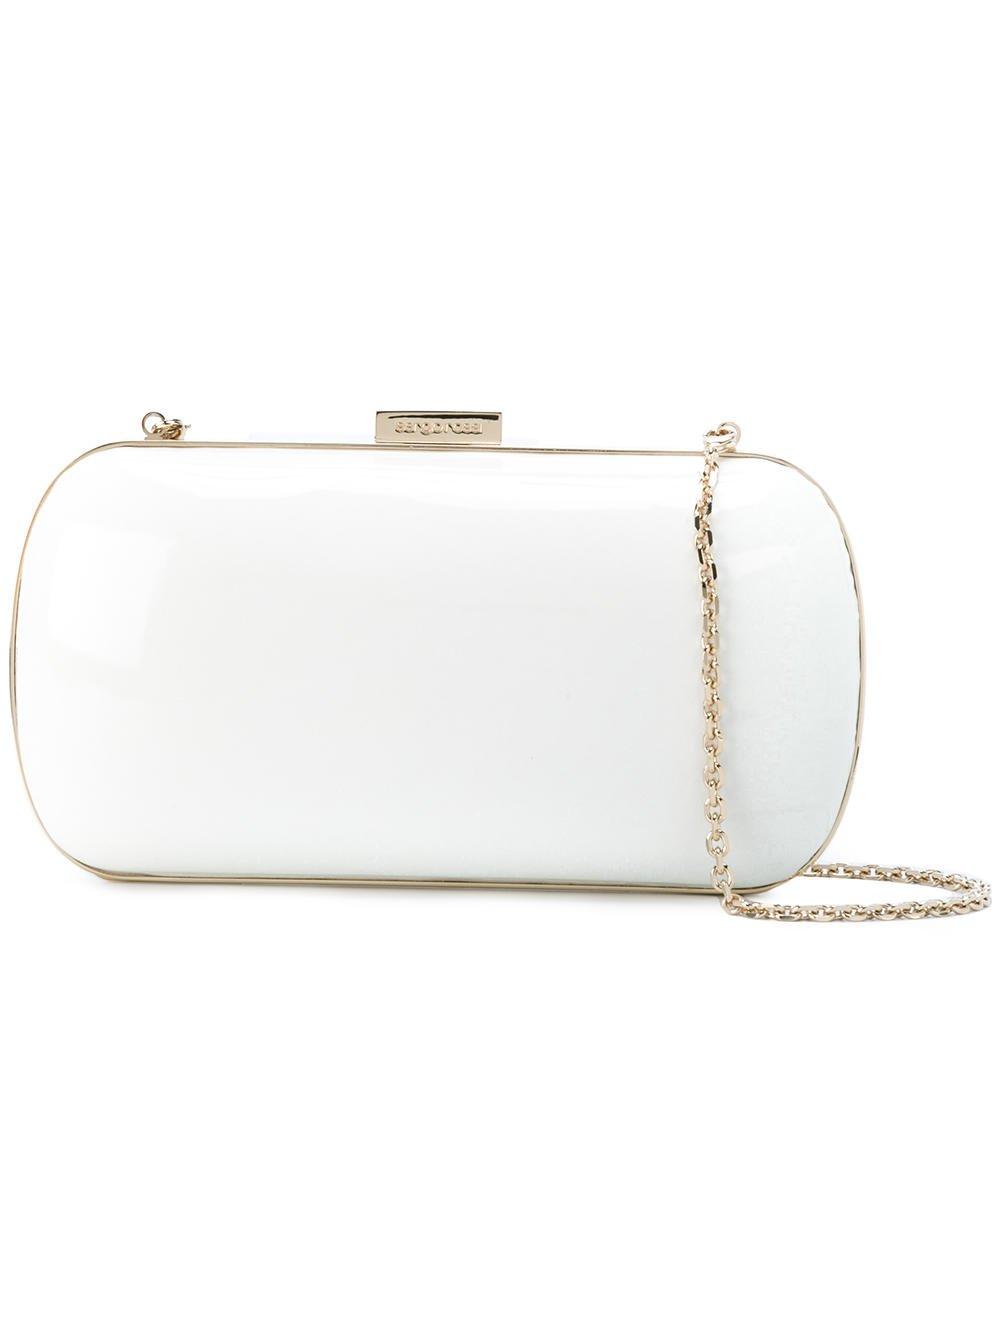 sergio rossi outlet rome, Sergio Rossi small clutch VERNICE SOFT BIANCO Women Bags,sergio rossi leather ankle boots, sergio rossi boots for sale best value